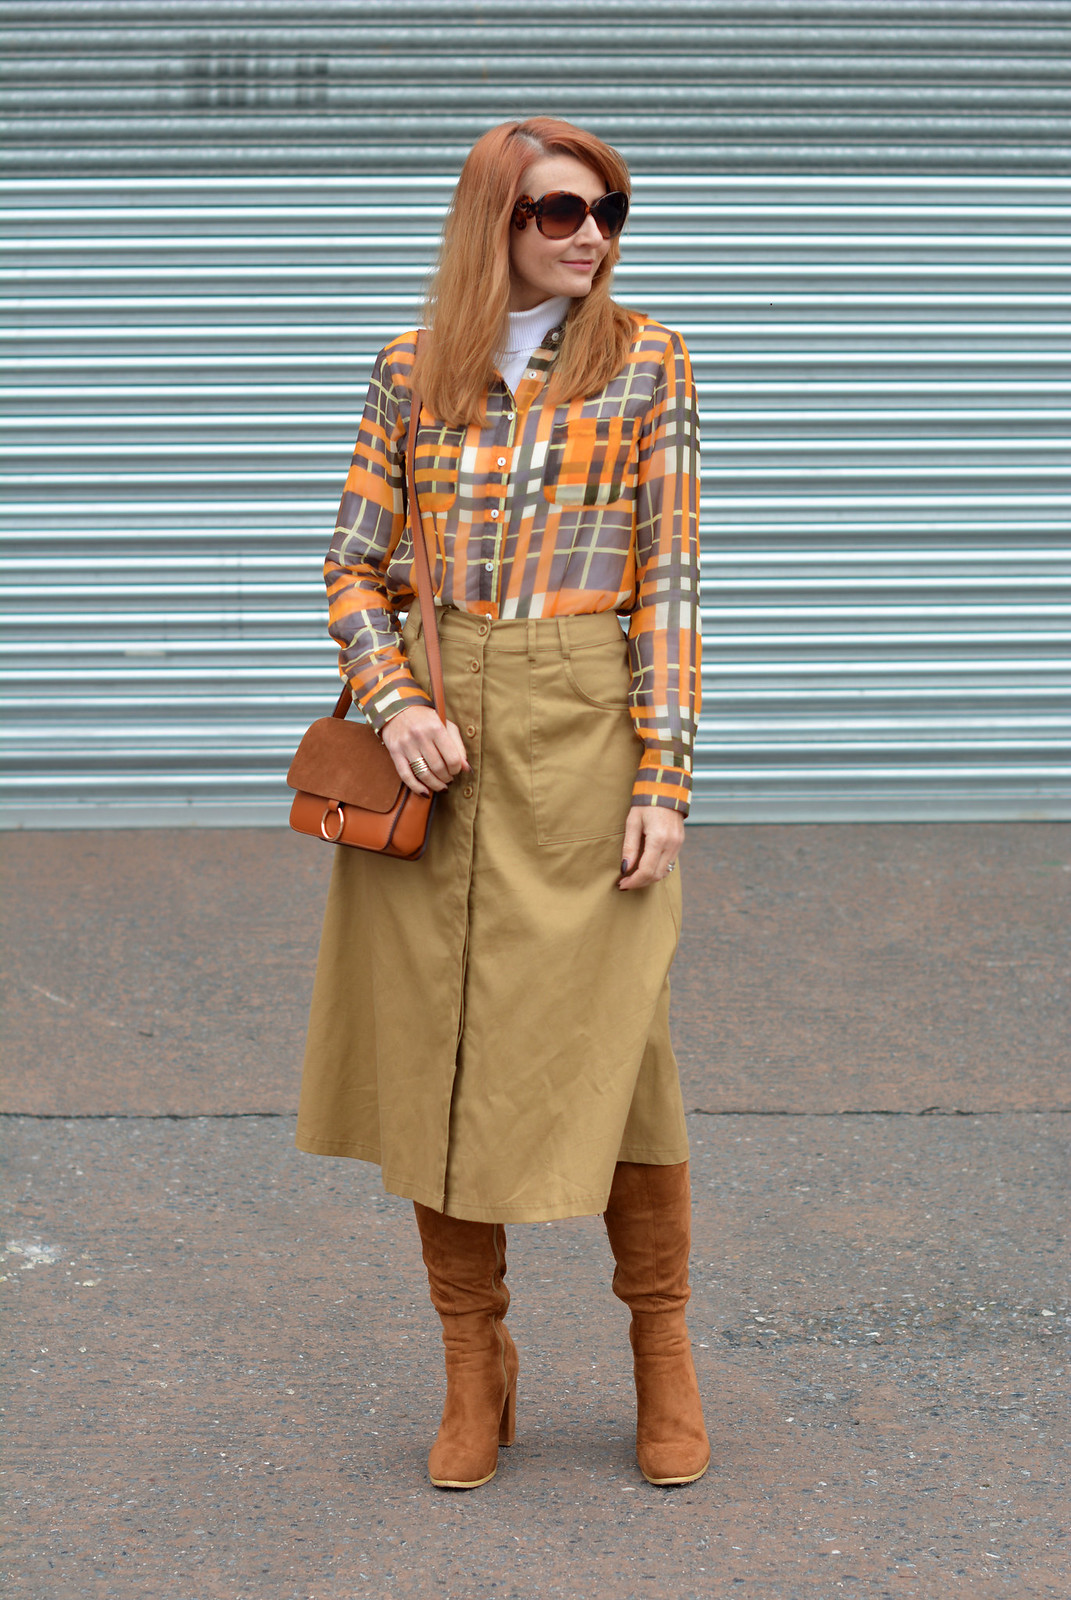 70s style without wearing flared jeans | Midi skirt, boots and roll neck